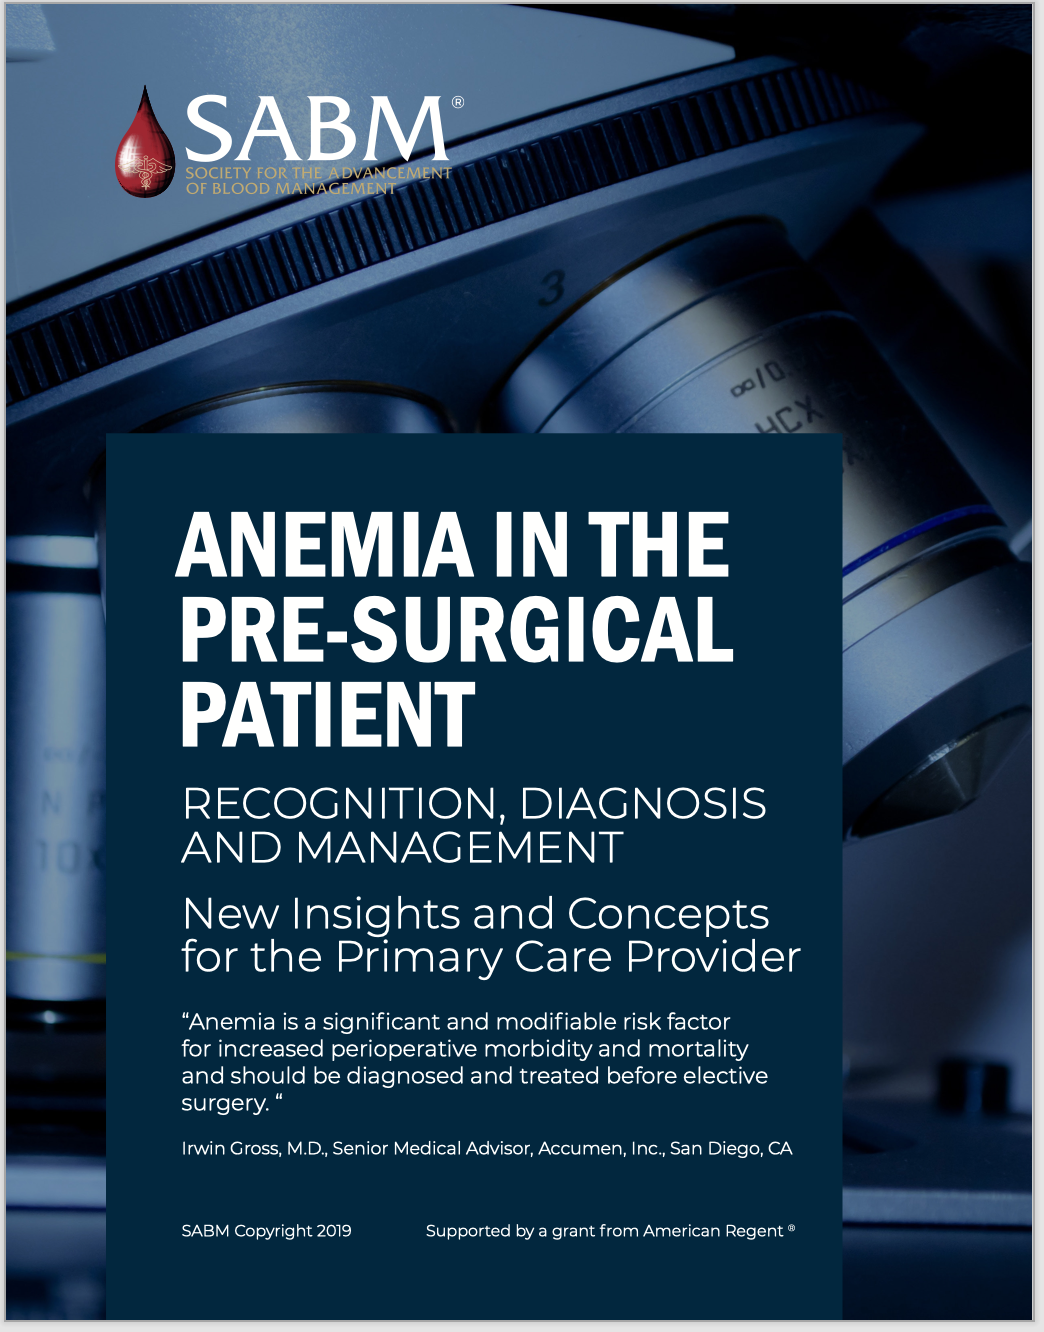 Anemia in the Pre-Surgical Patient